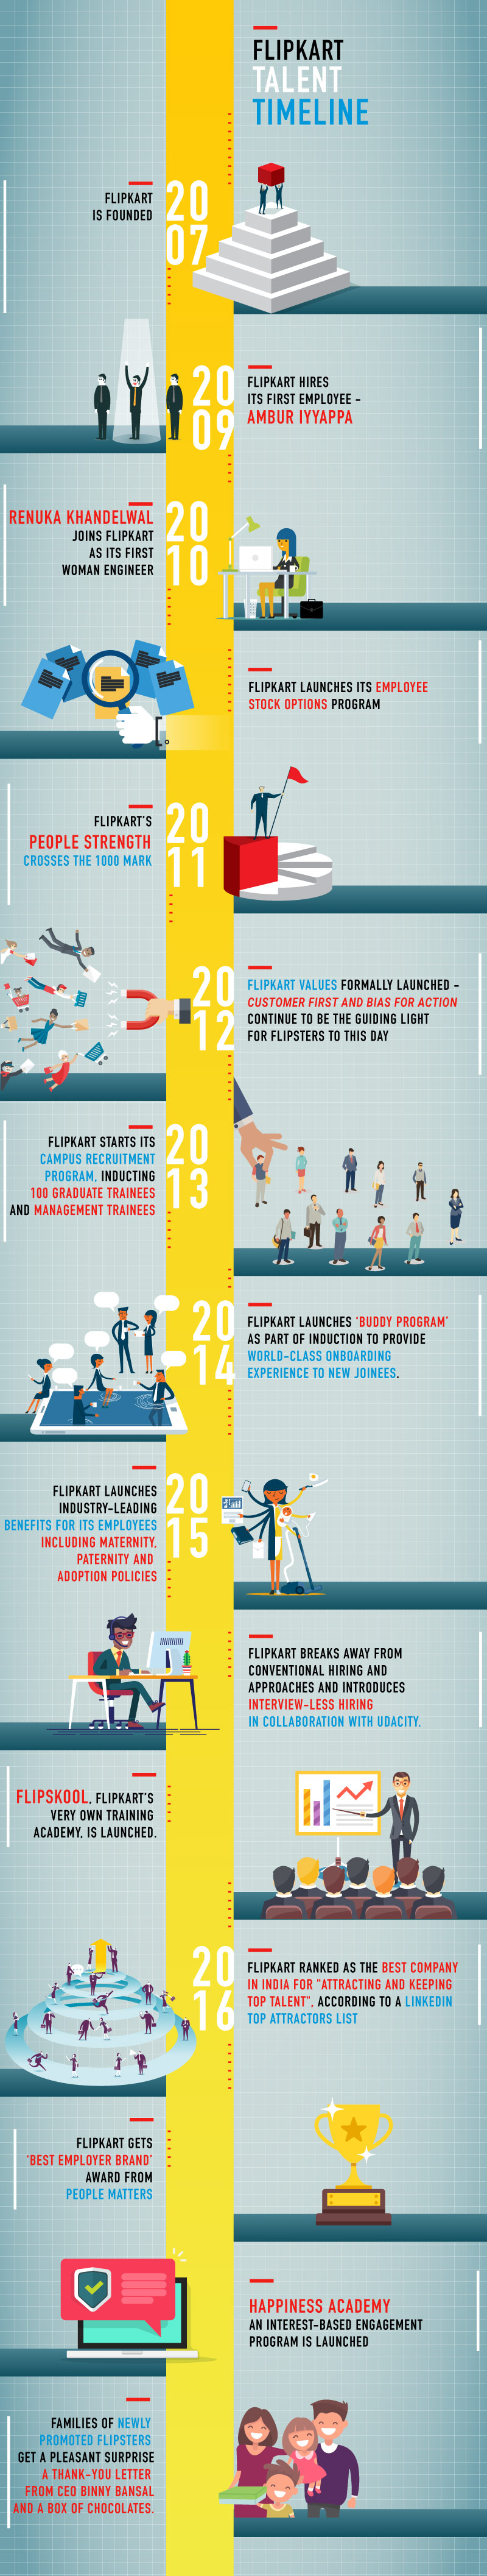 The Flipkart Talent Timeline